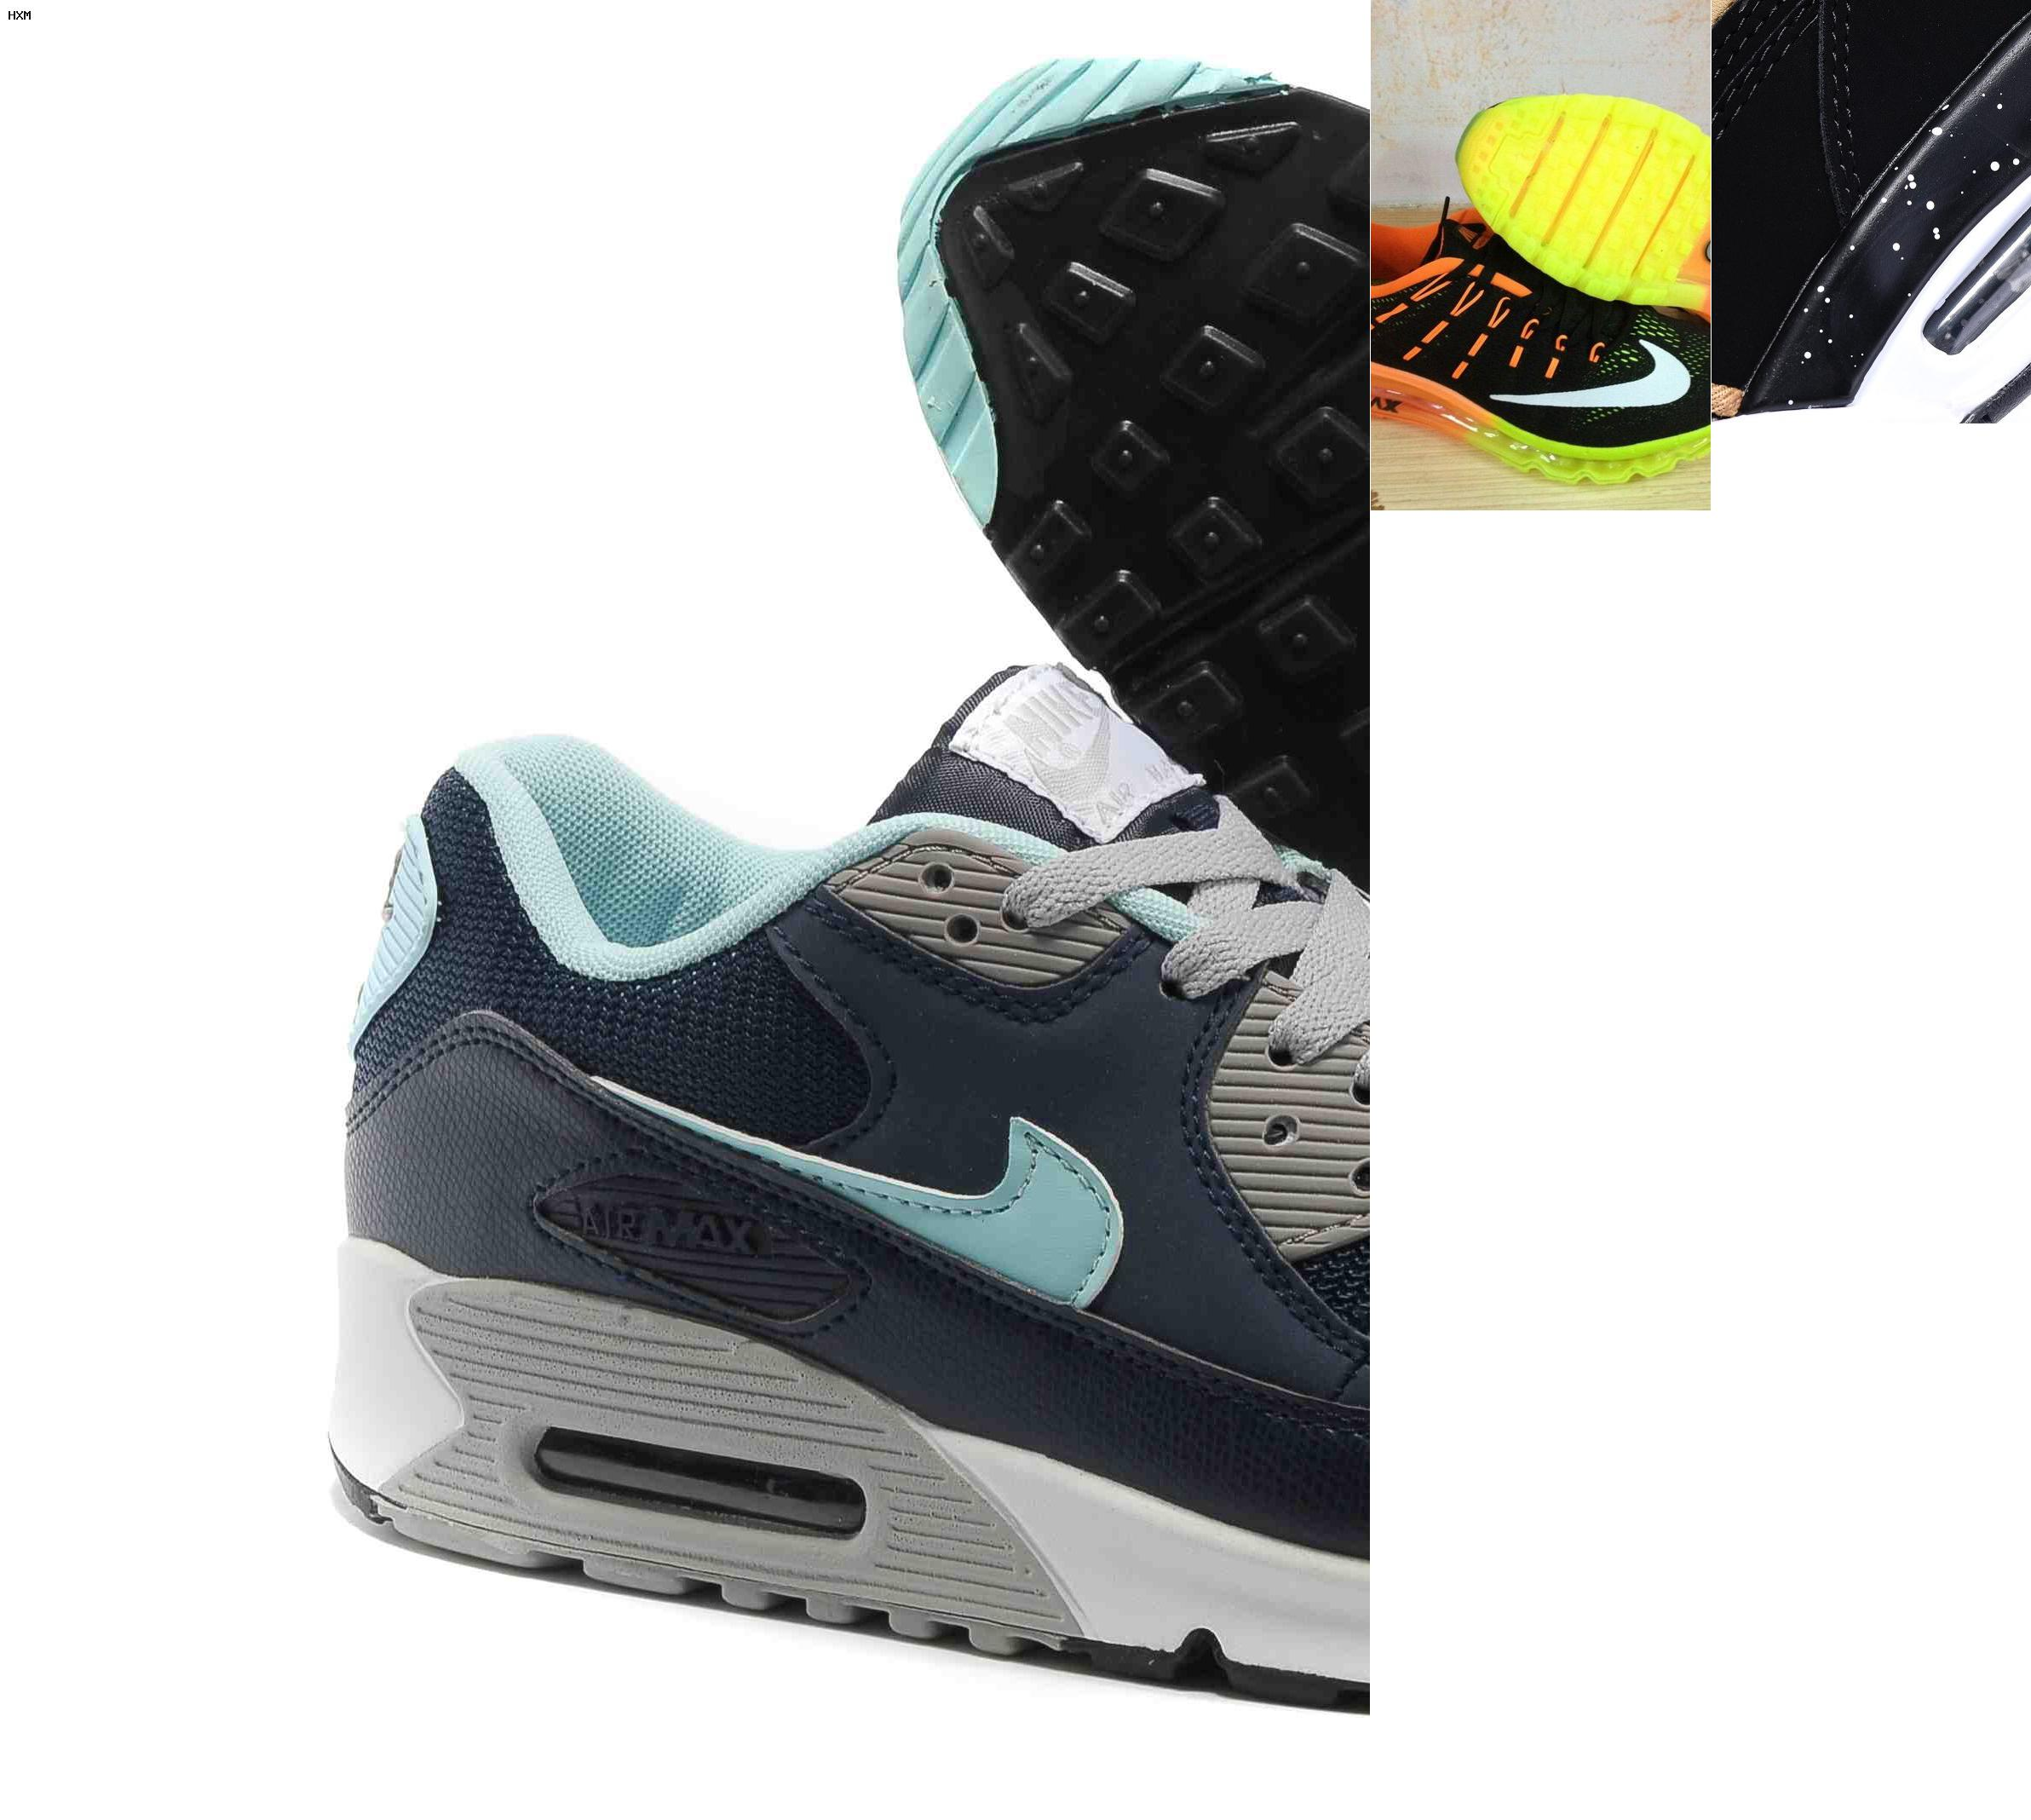 Homme Nike Polyester Polyester Survetement Survetement Survetement Nike Homme jLMzGSqpUV